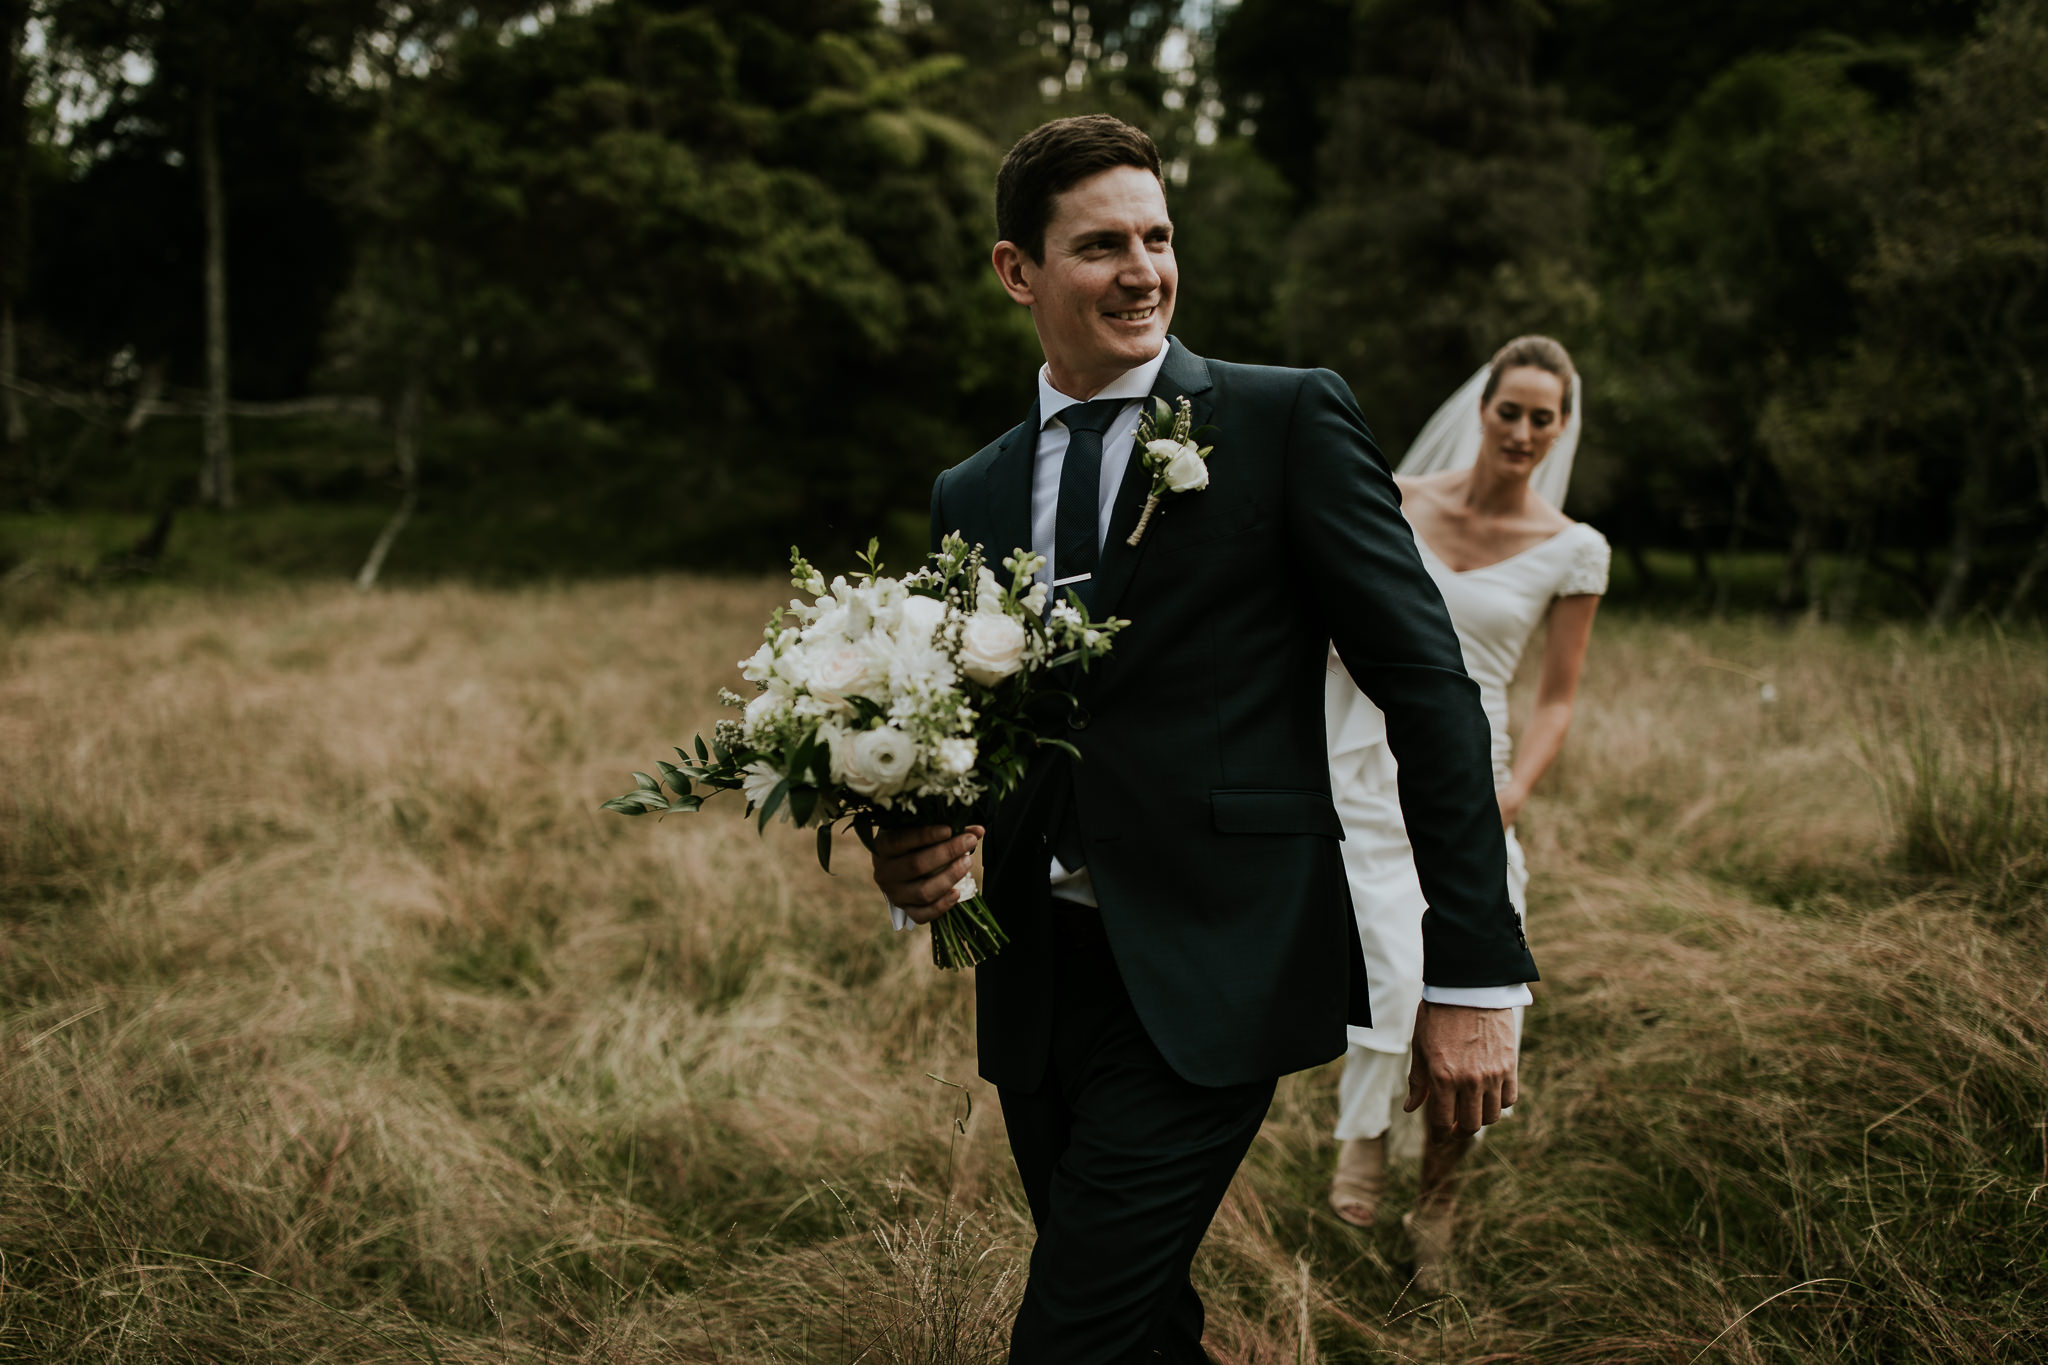 New Zealand groom holding bouquet and walking through field